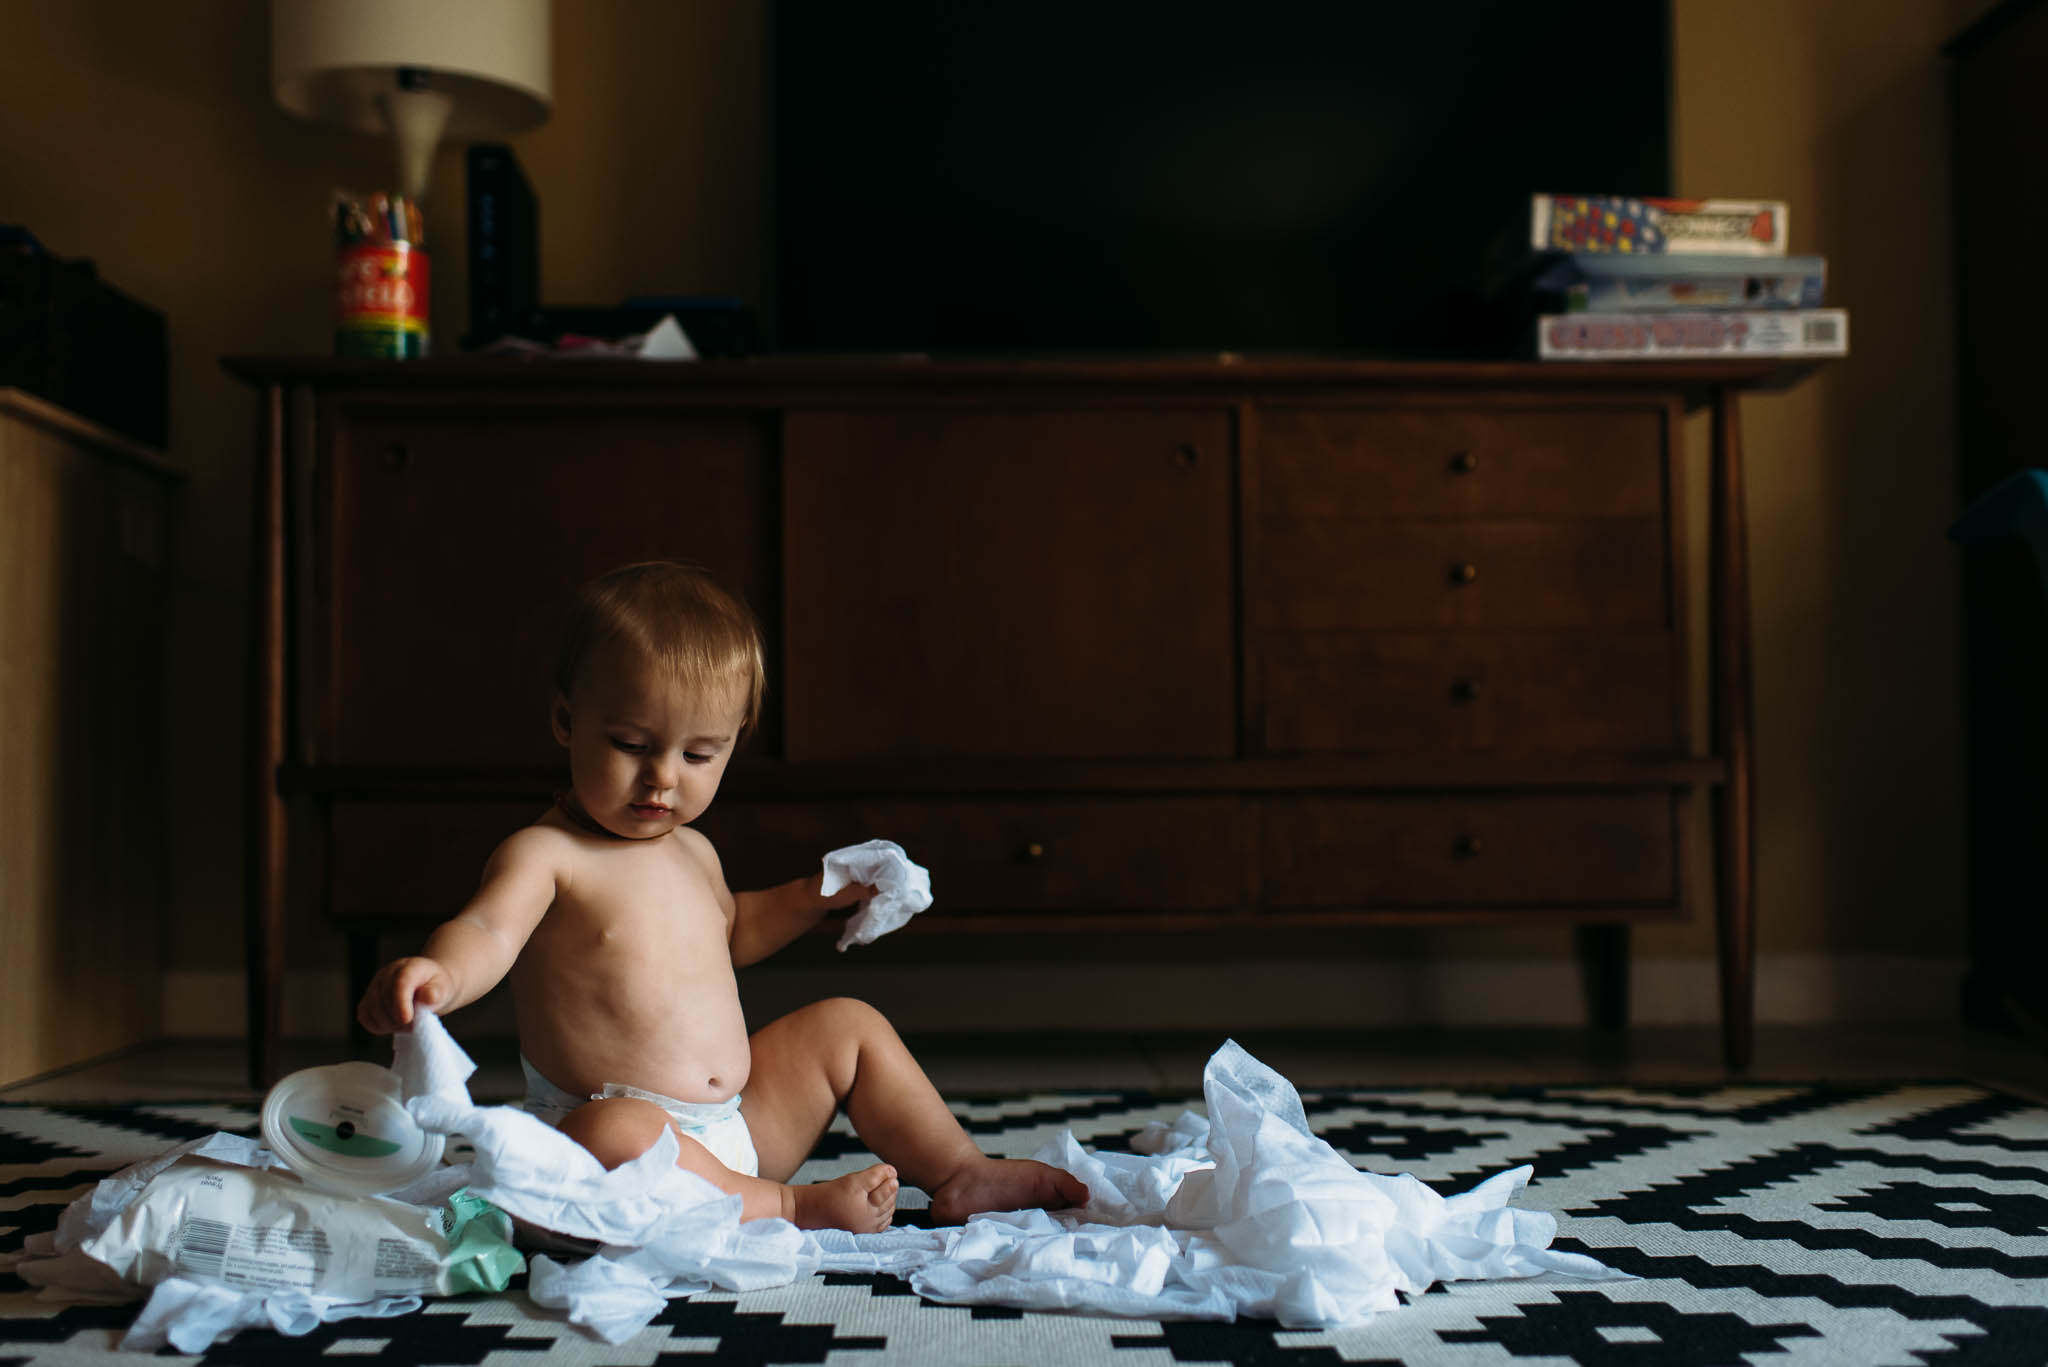 Baby pulling wipes out of a container and making a mess.